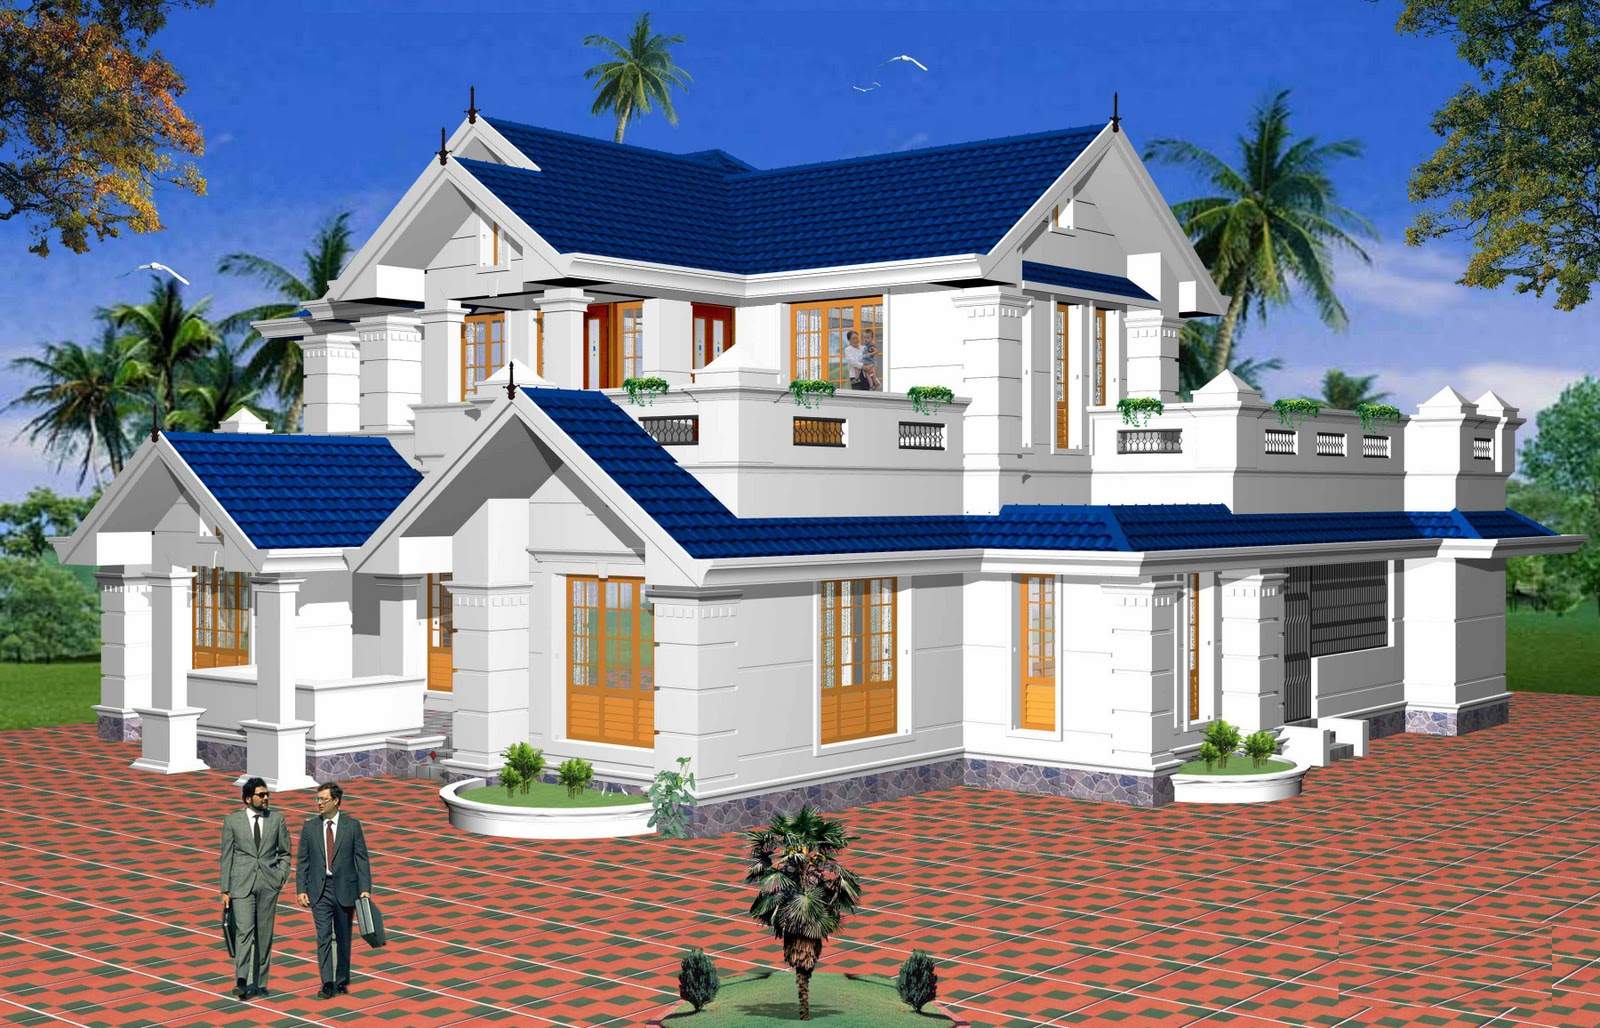 Incredible Architectural Design Home House Plans 1600 x 1028 · 451 kB · jpeg